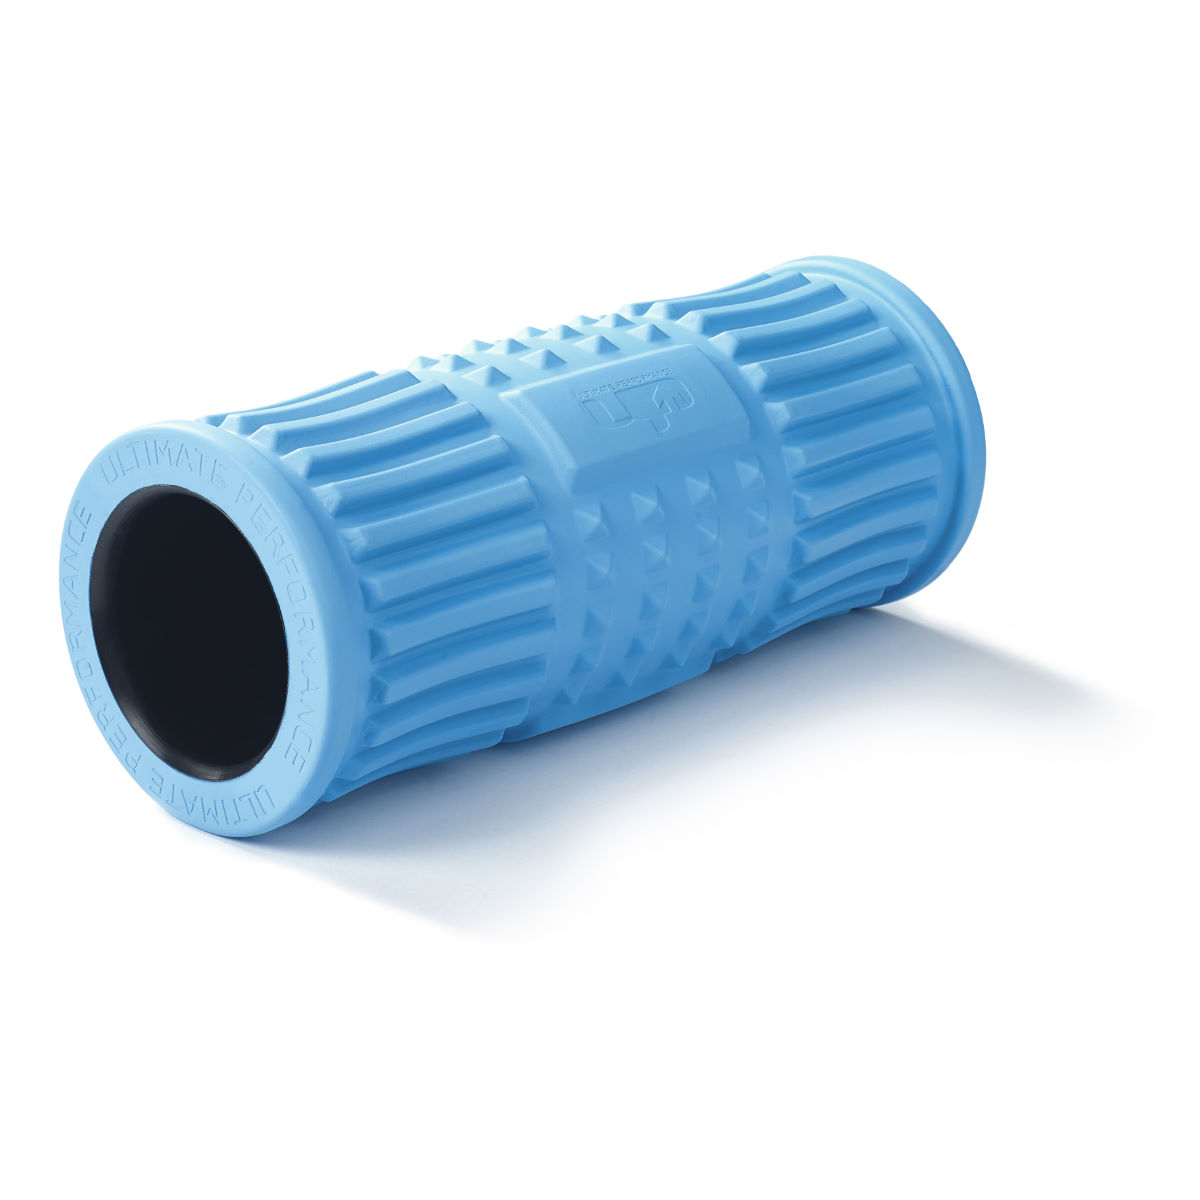 Ultimate Performance Ultimate Performance Massage Therapy Roller   Foam Rollers